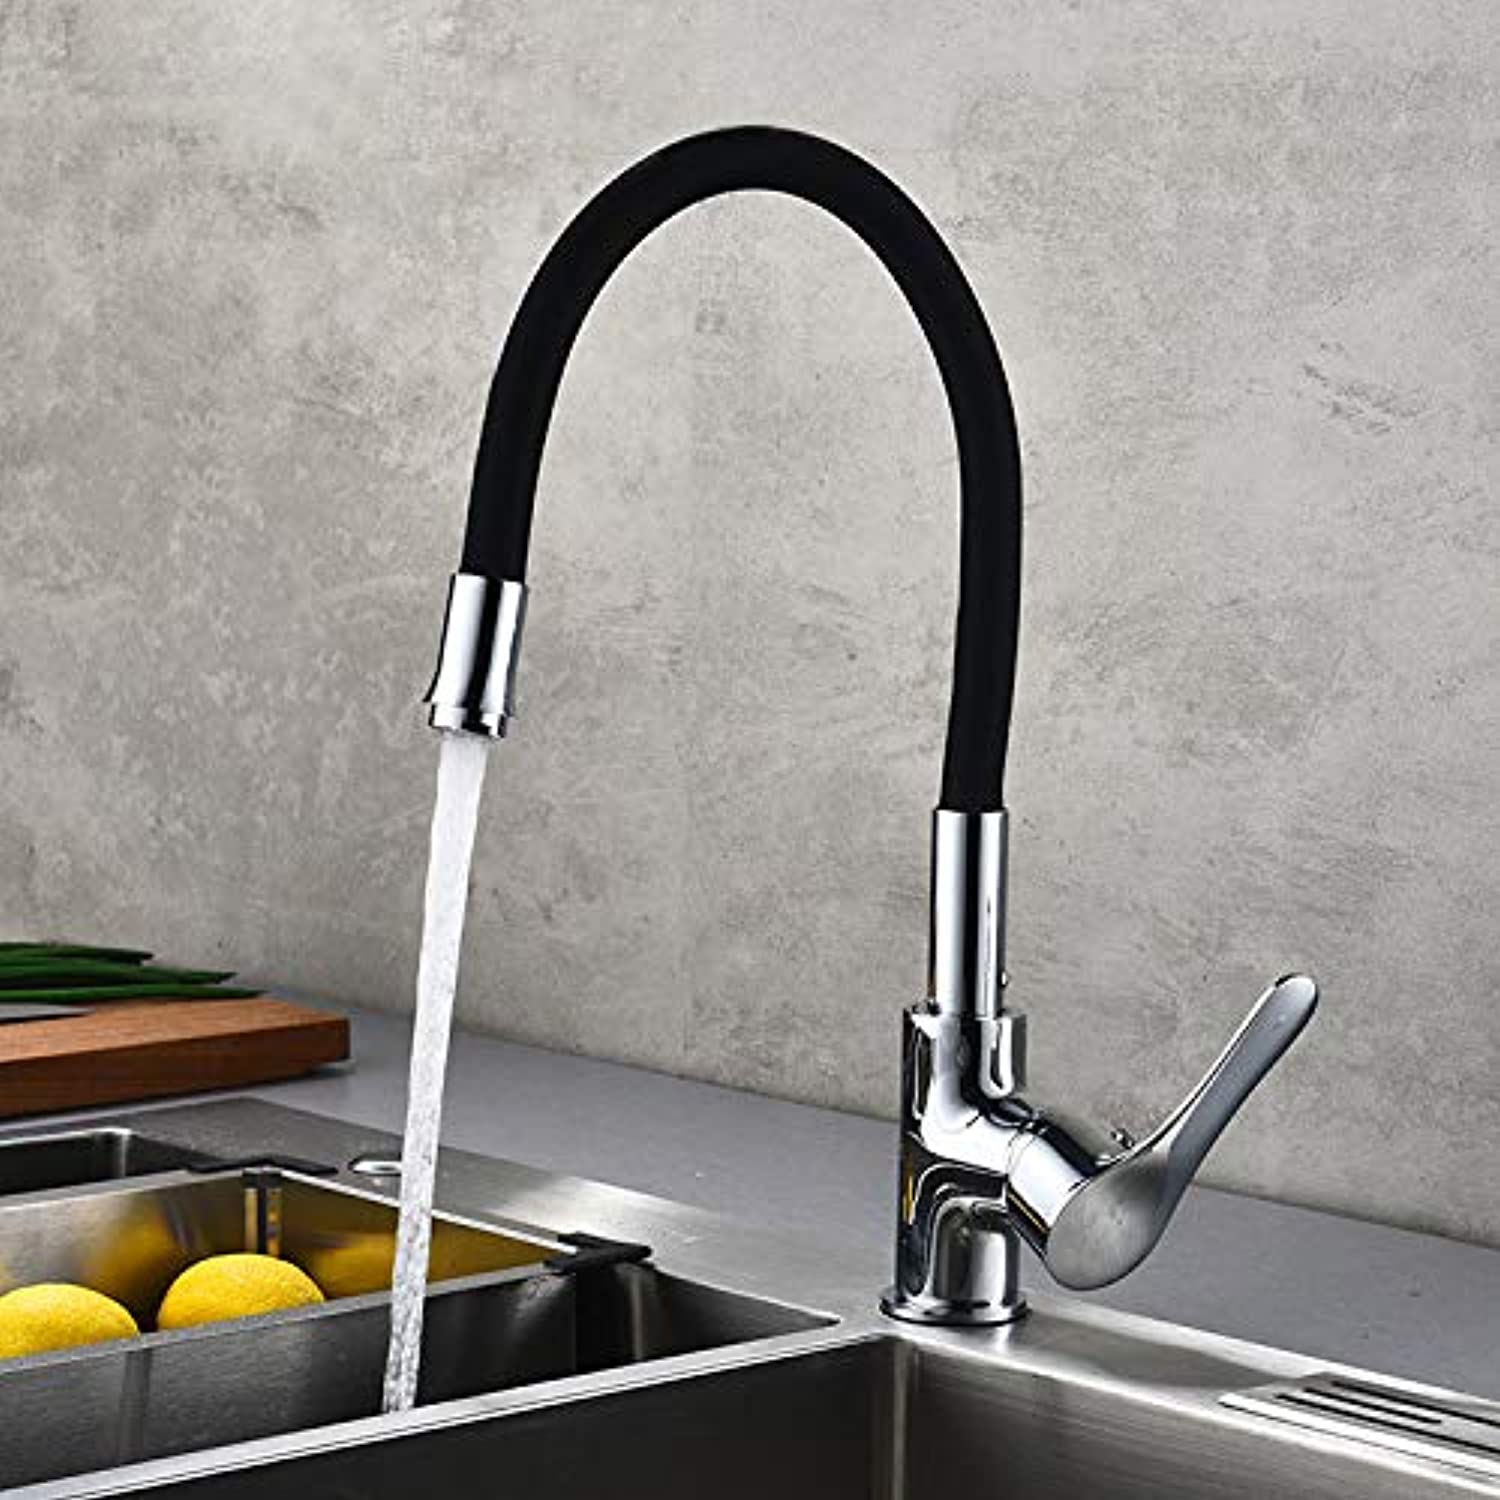 redOOY Kitchen sink full copper body tube kitchen hot and cold faucet sink sink faucet kitchen redatable basin faucet